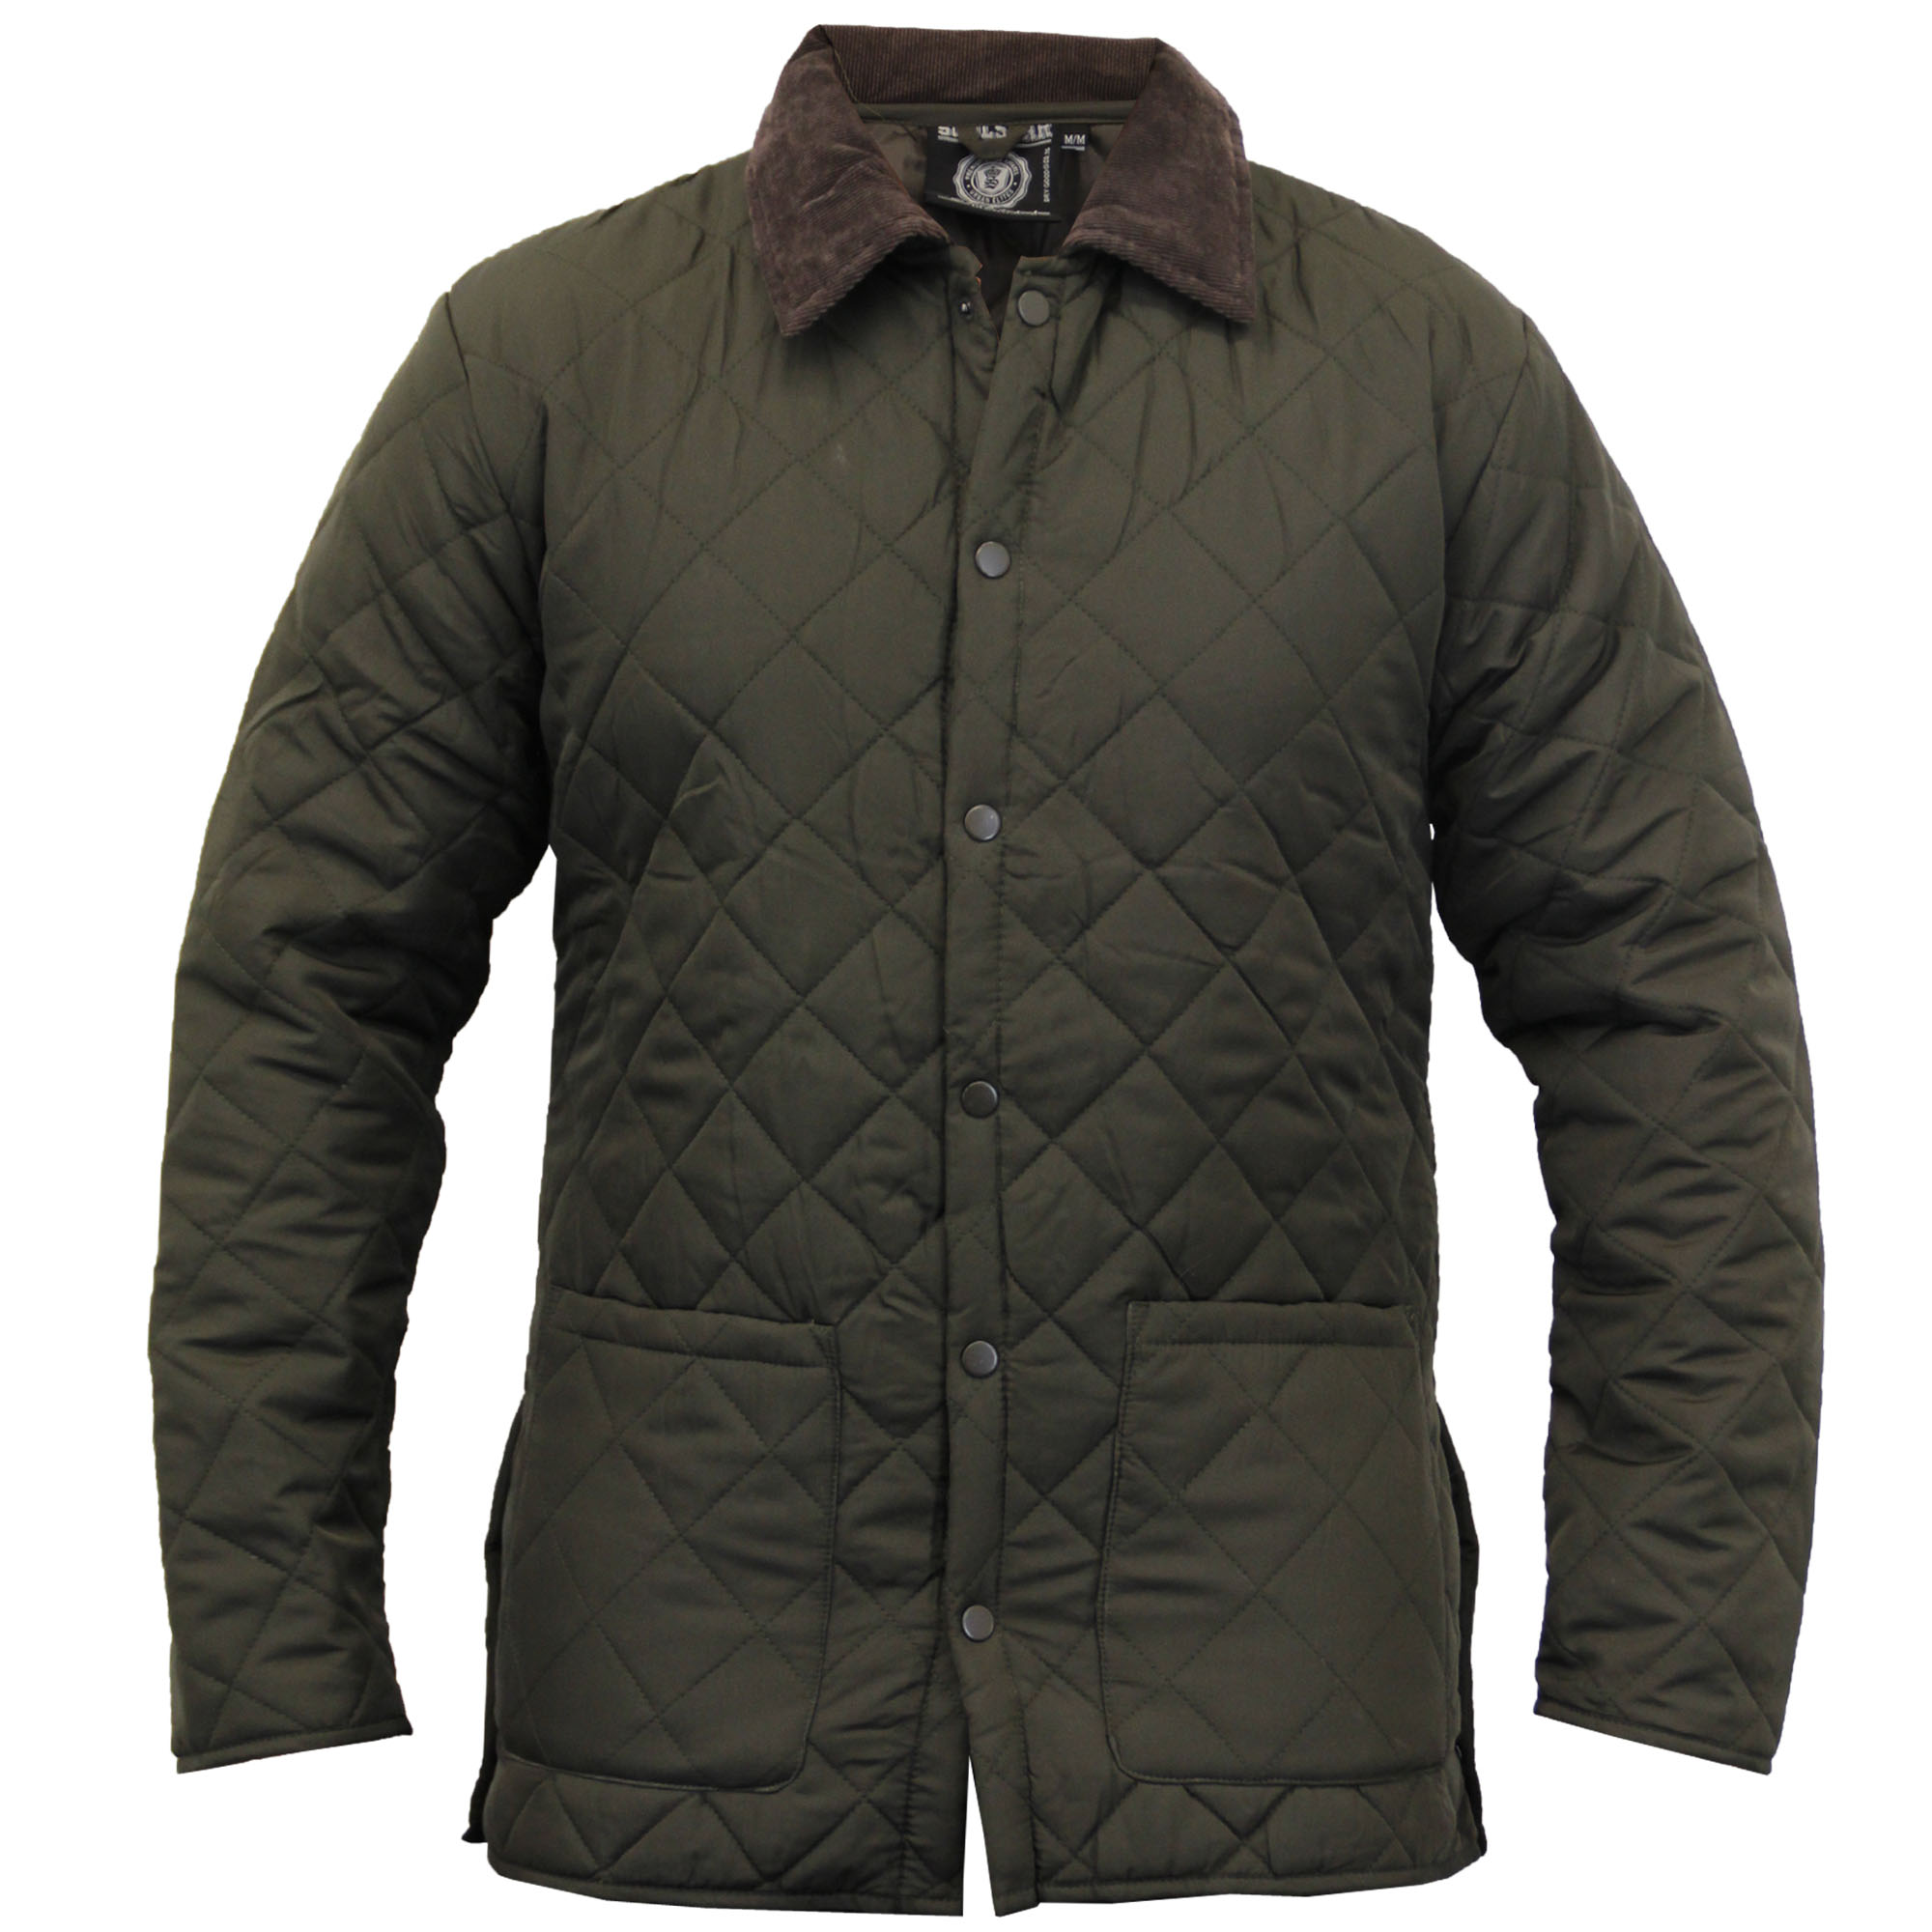 Mens Jacket Soul Star Coat Padded Quilted Corduroy Brave